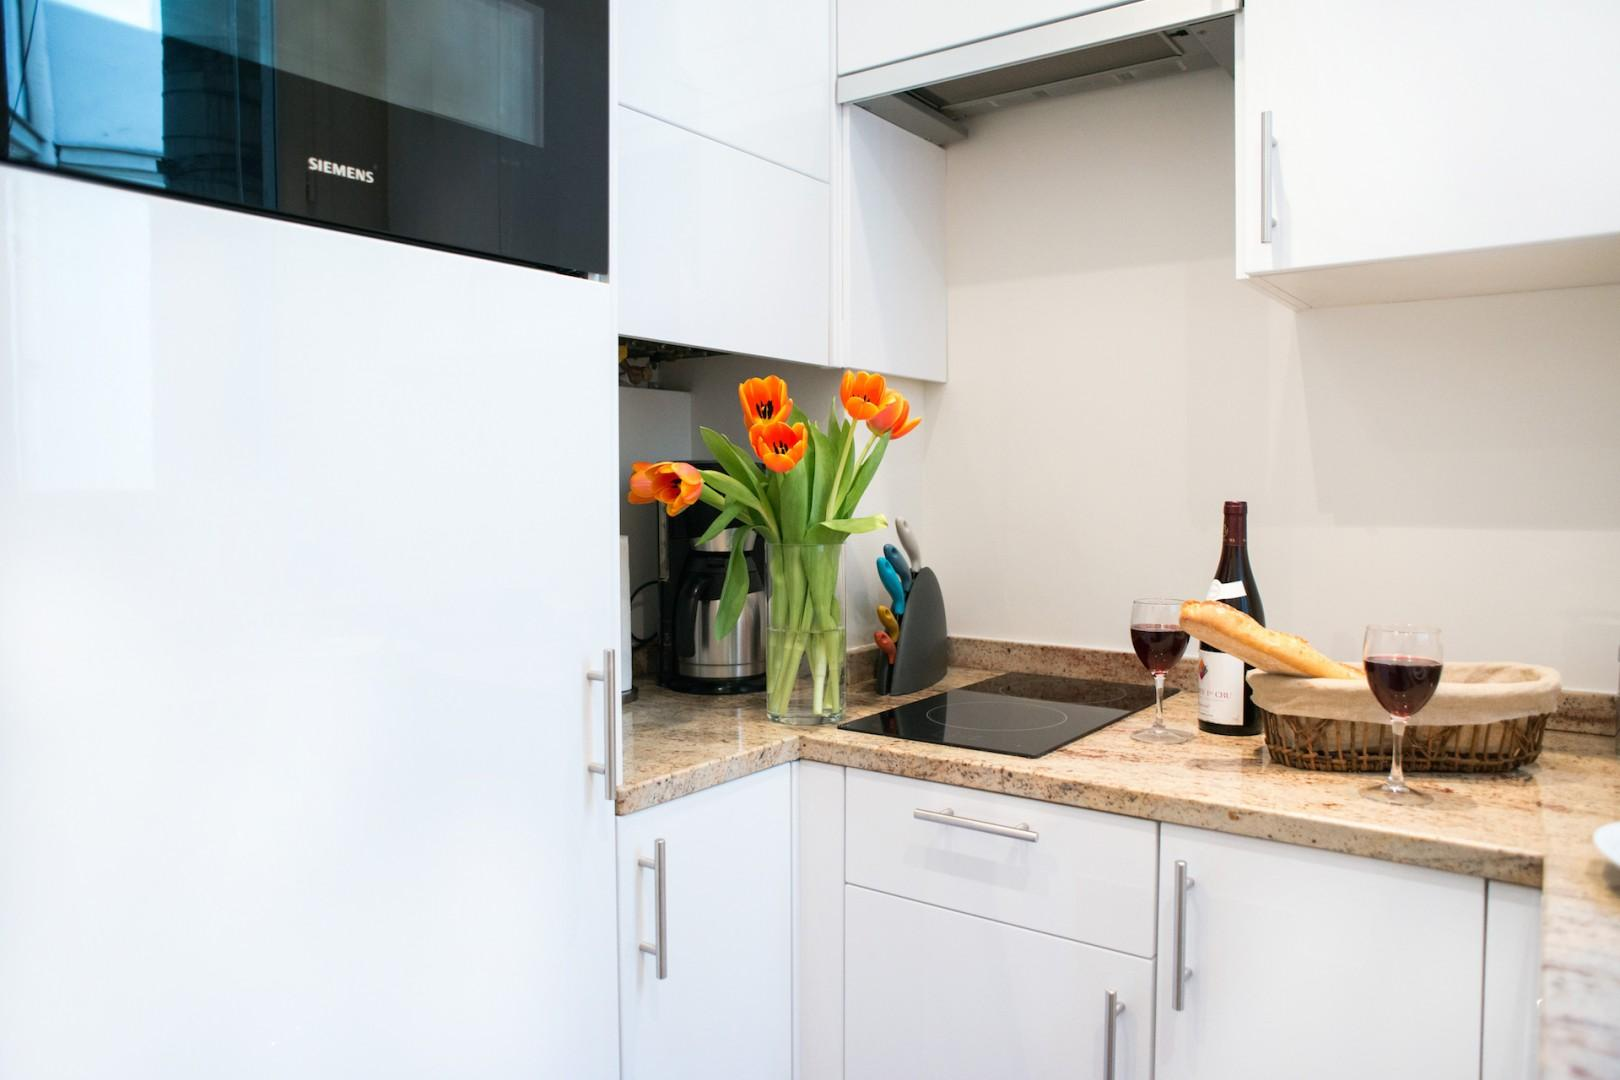 Combination microwave-oven and two-burner stove top